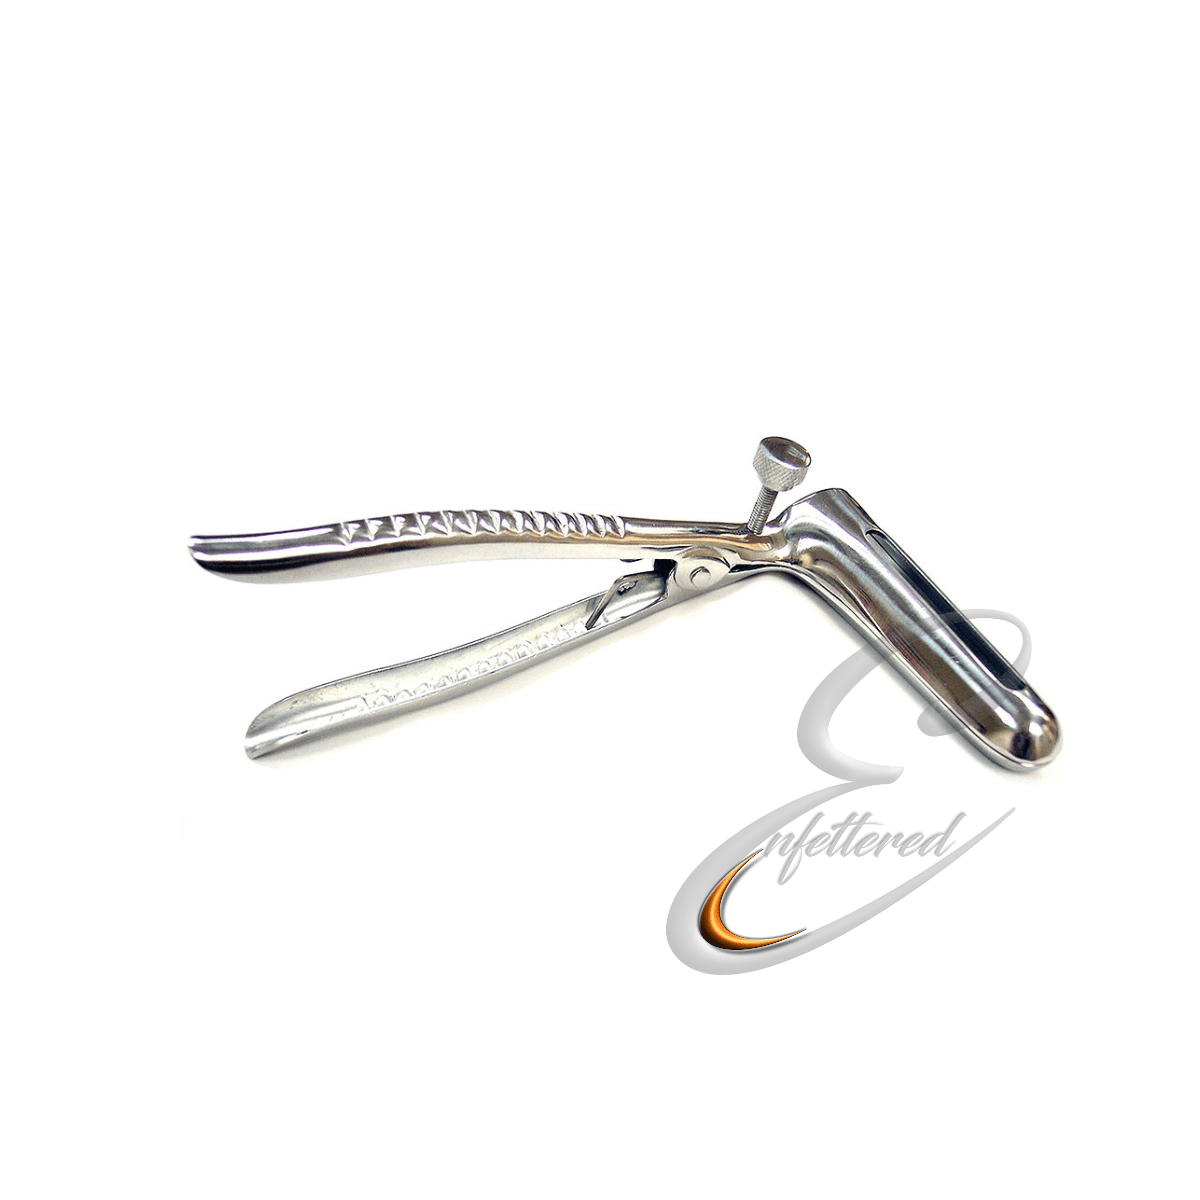 Enfettered Stainless Steel Locking Anal Speculum